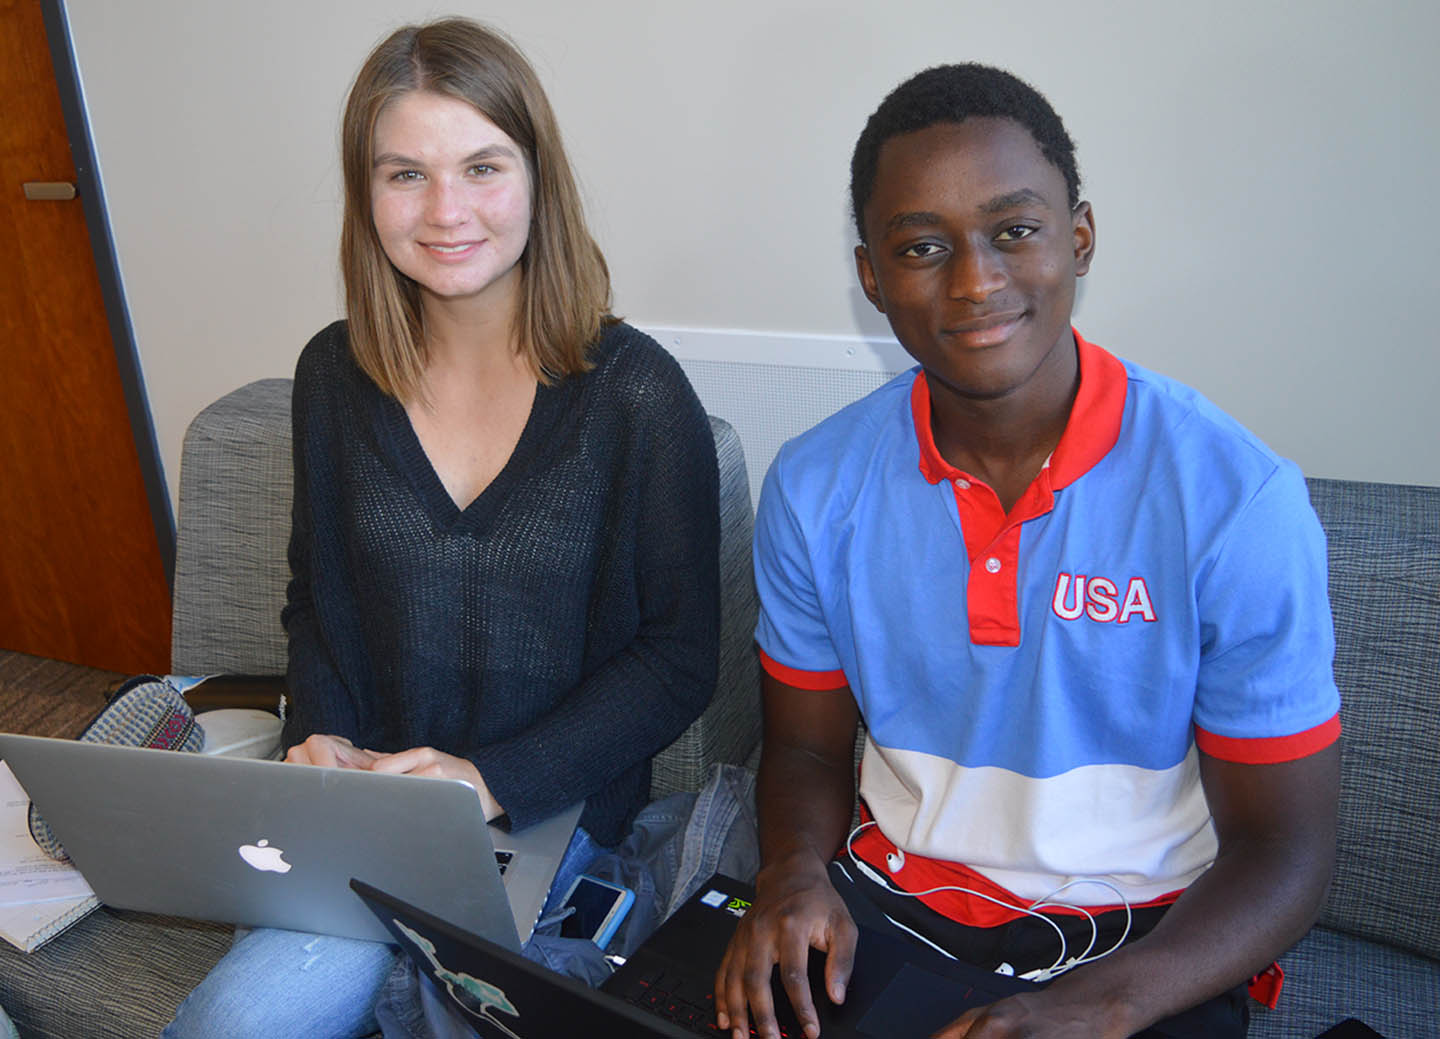 Data Science student Hannah Peterson and hacking partner Luyanda Mdanda with computers they used to win top hackathon prize